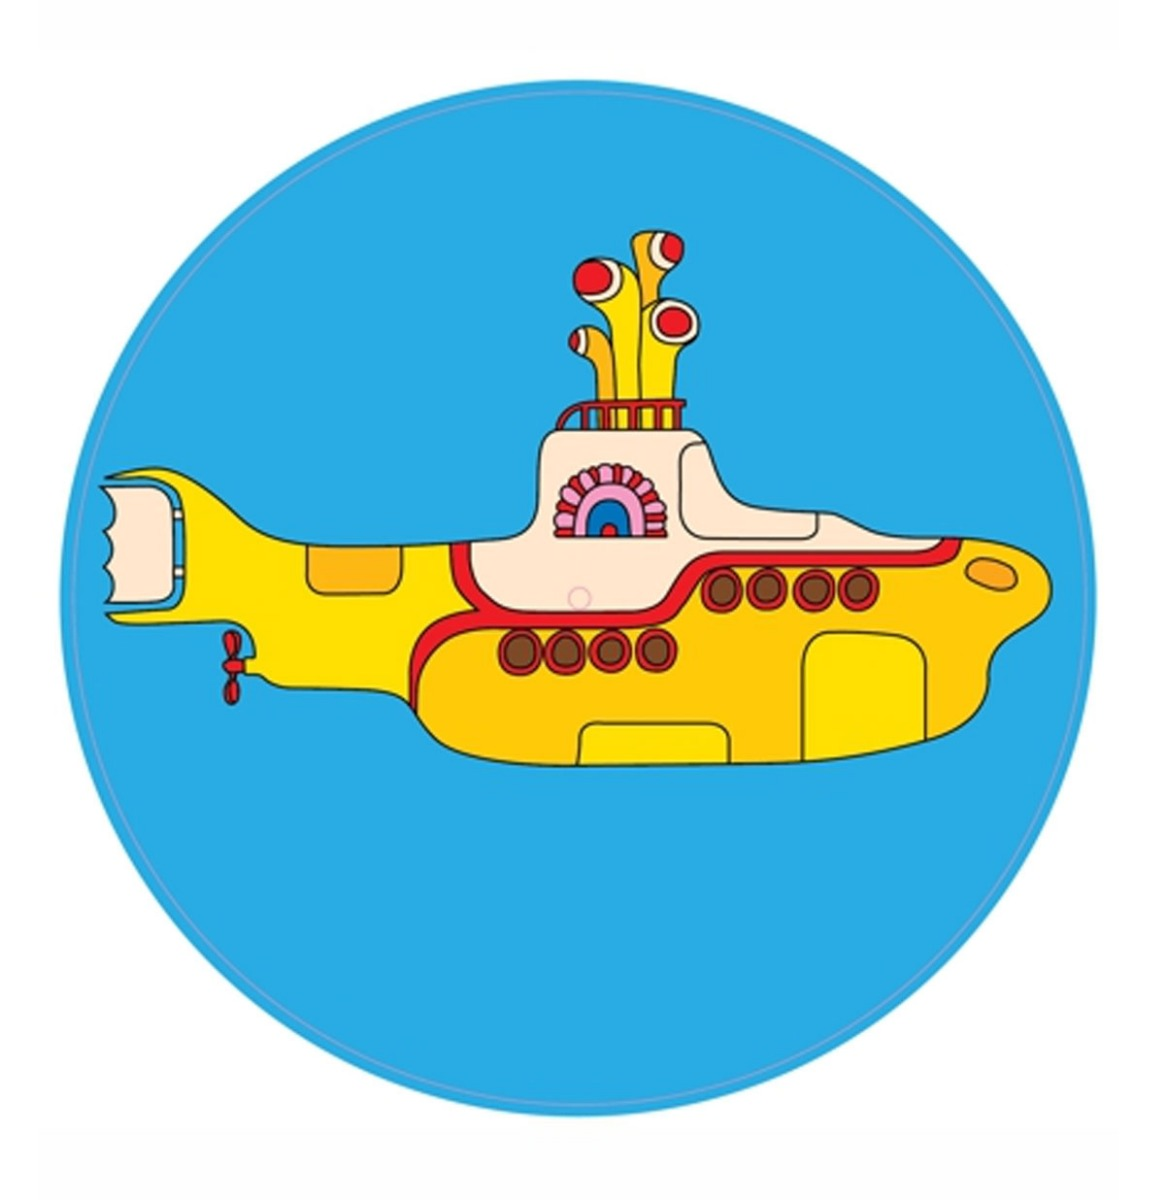 Crosley Slipmat The Beatles Yellow Submarine Vilt